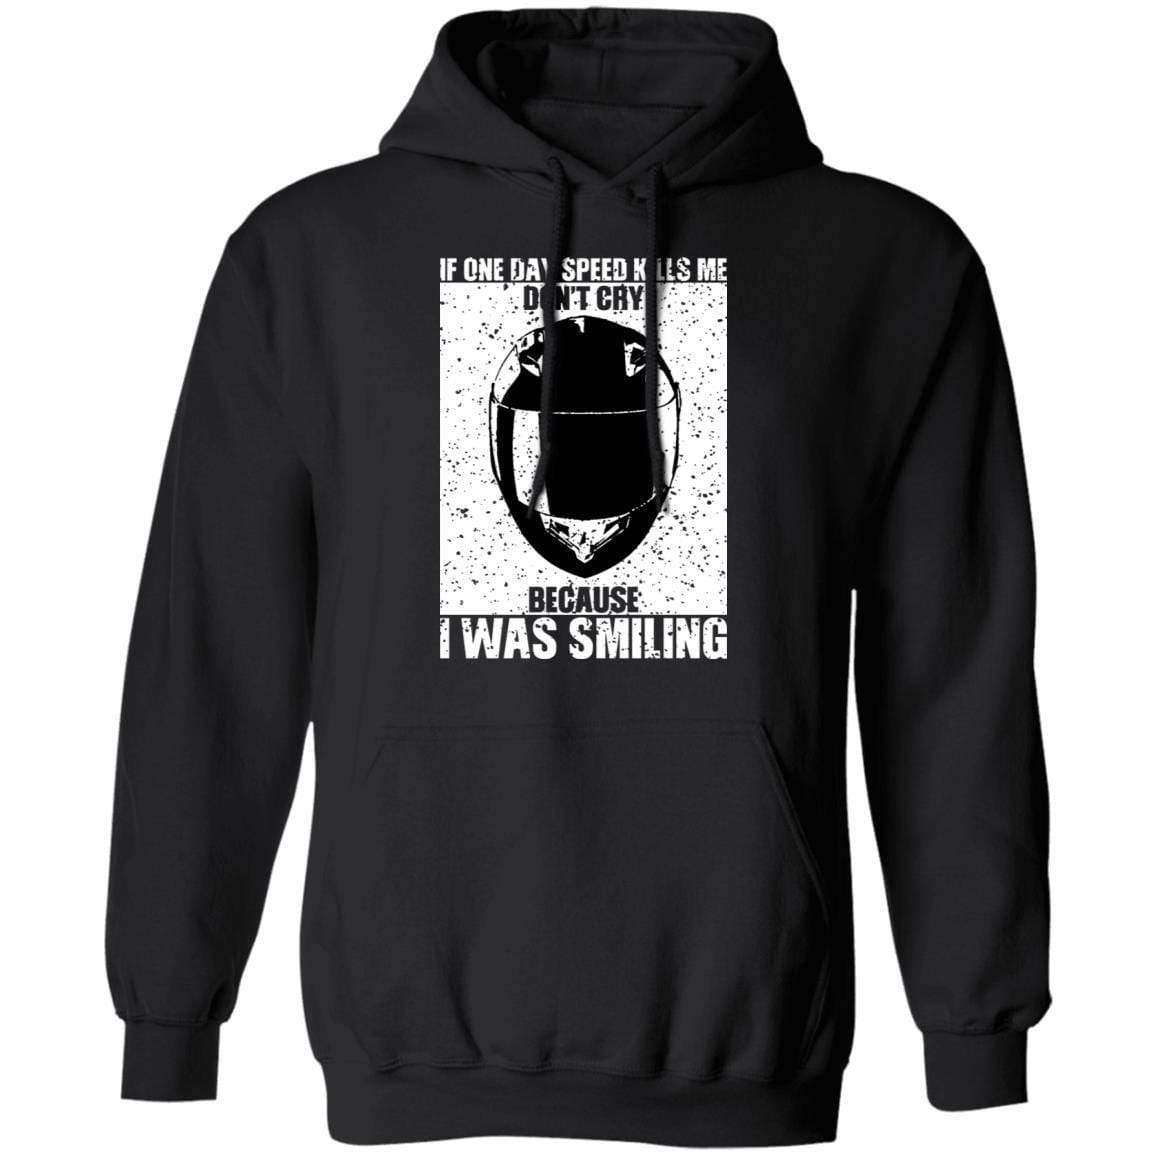 If One Day Speed Kills Me Don't Cry Because I Was Smiling T-Shirts, Hoodies 541-4740-91876510-23087 - Tee Ript